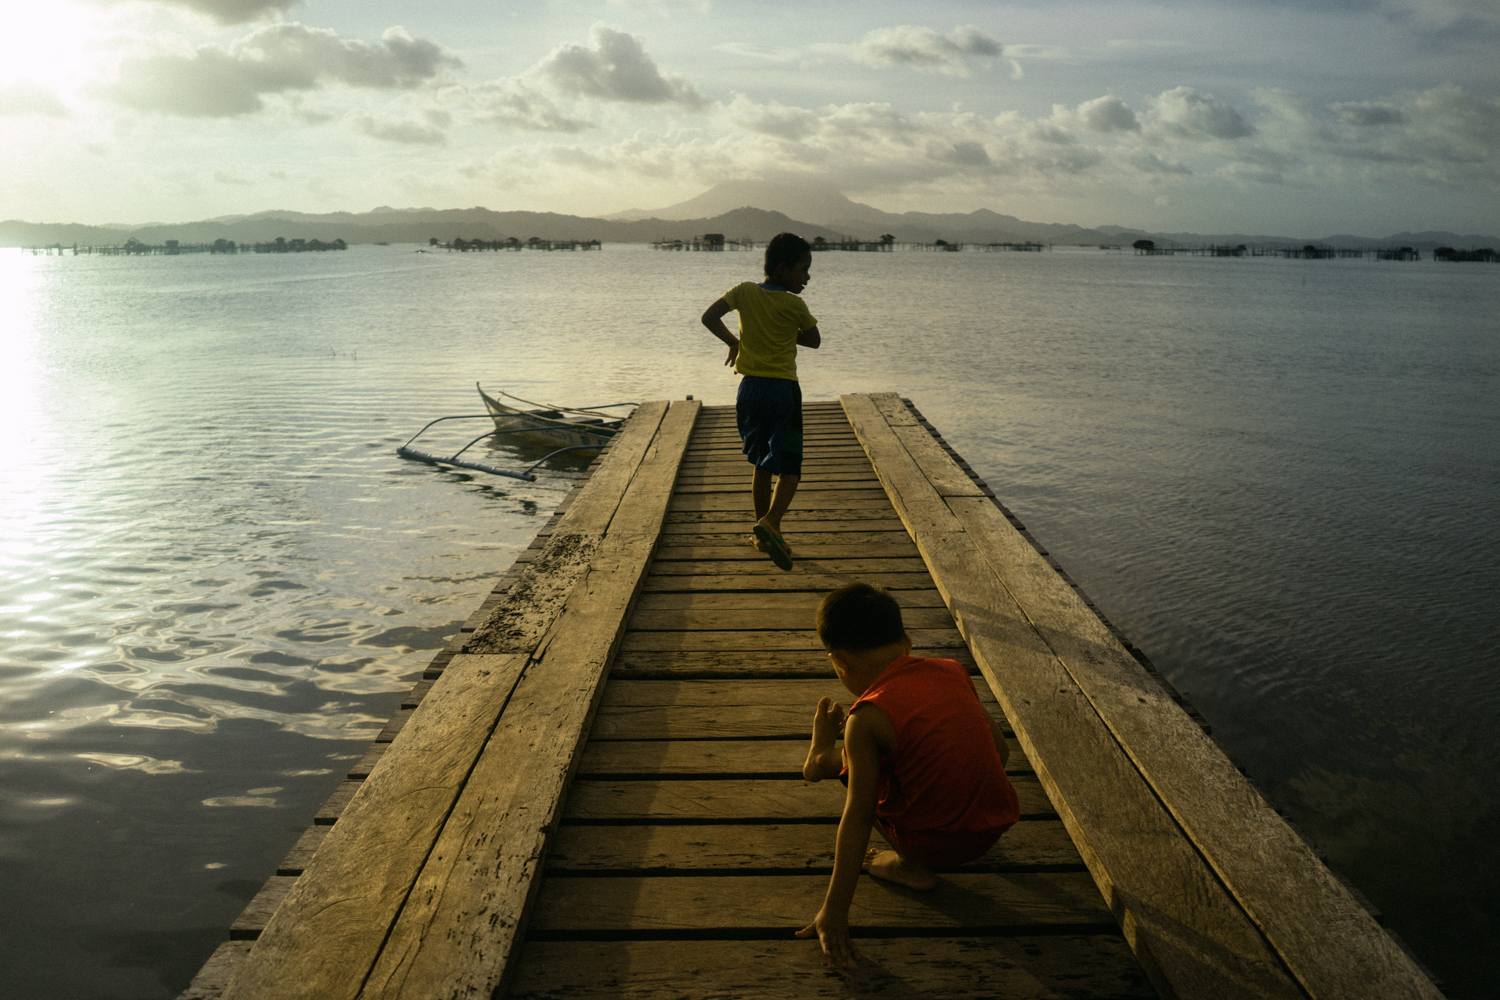 Children play in a jetty in Malampaya Sound, a marine protected area in Palawan, Philippines. Palawan is part of the Coral Triangle, the global centre of marine biodiversity, and a global priority for conservation. Over 120 million people live in the Coral Triangle, relying on it for their shelter, sustenance, and livelihood.